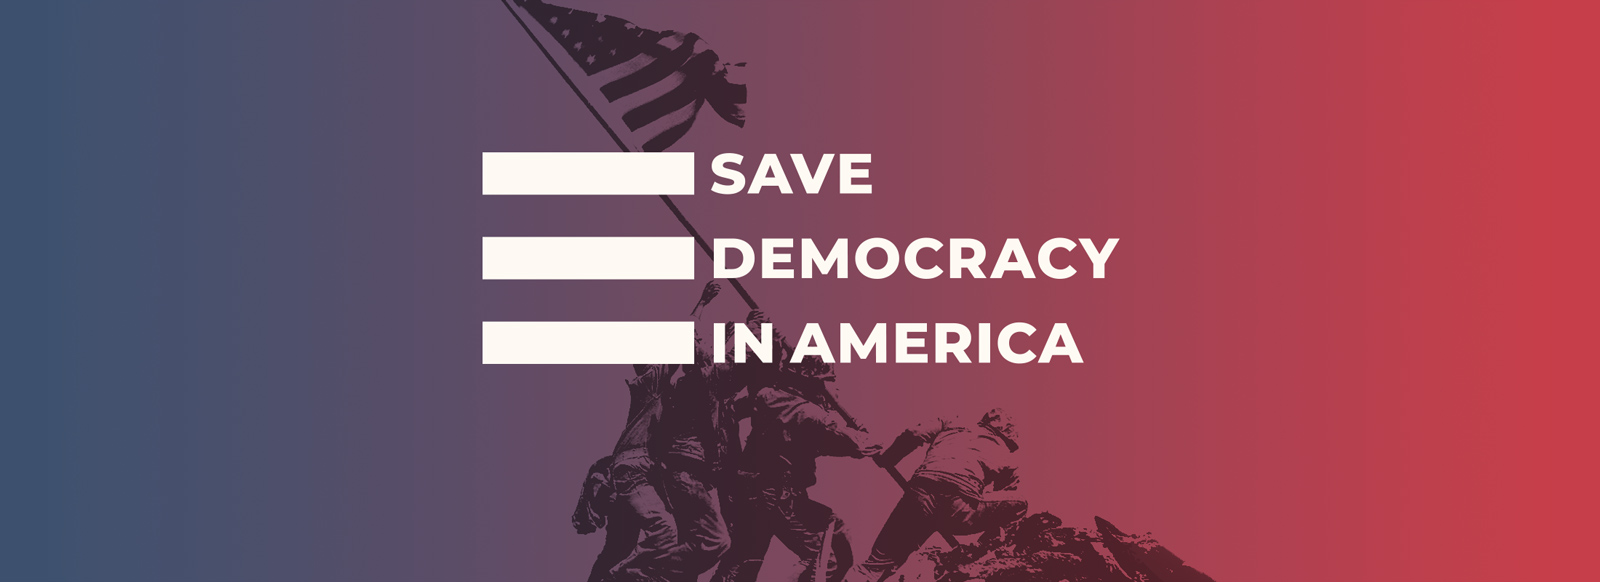 Save Democracy in America